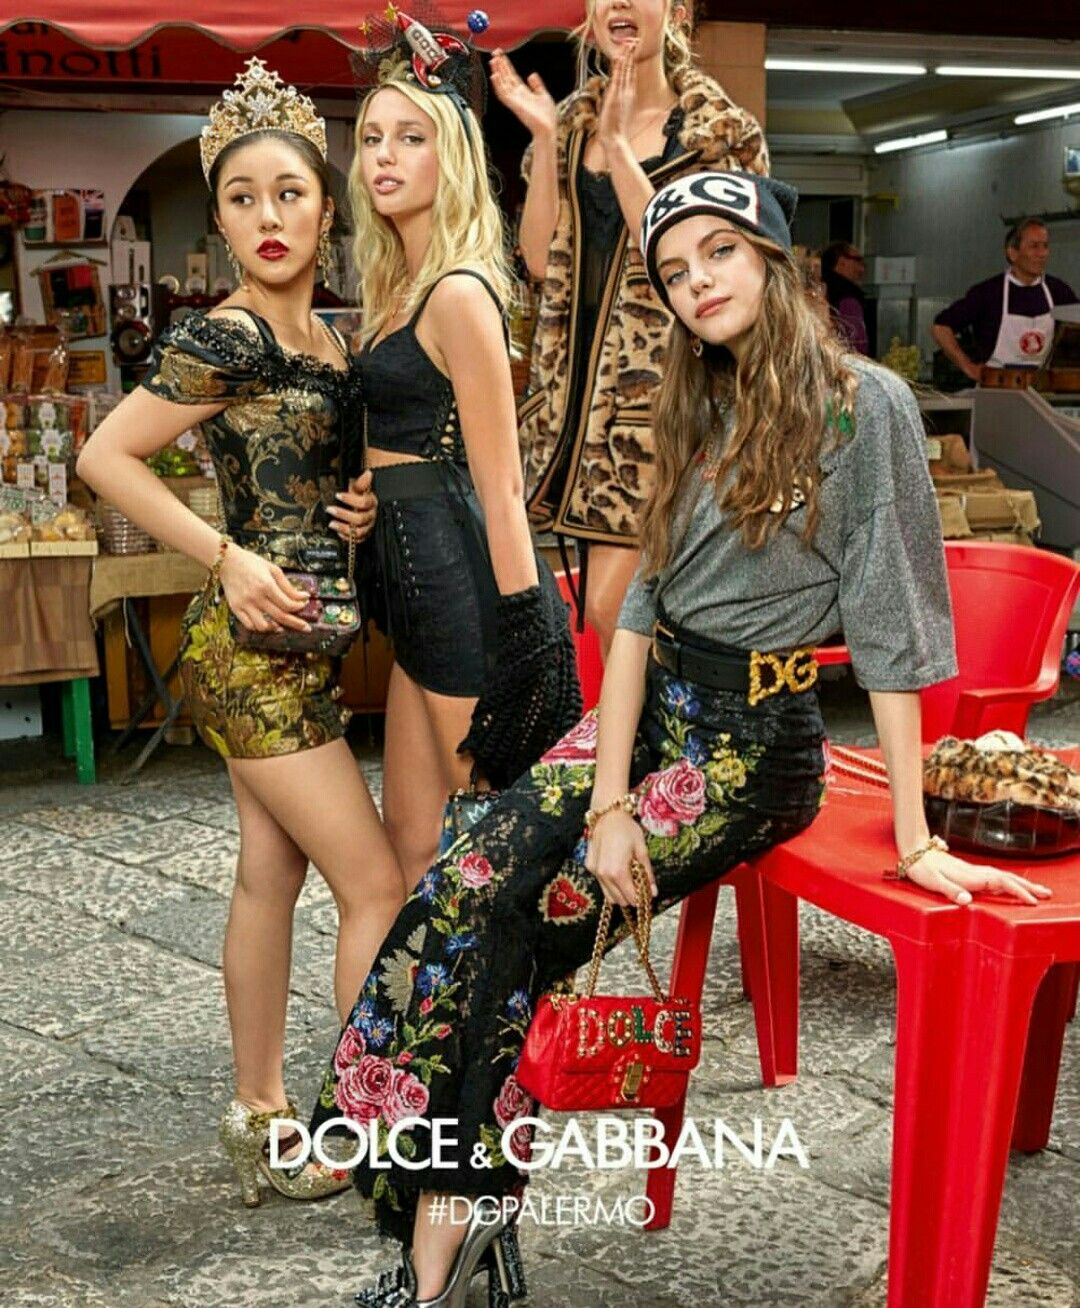 524b097ff60 Italian fashion brand Dolce   Gabbana continues its focus on Millennials  with the release of its fall-winter 2017 campaign. Photographed on location  in Pal